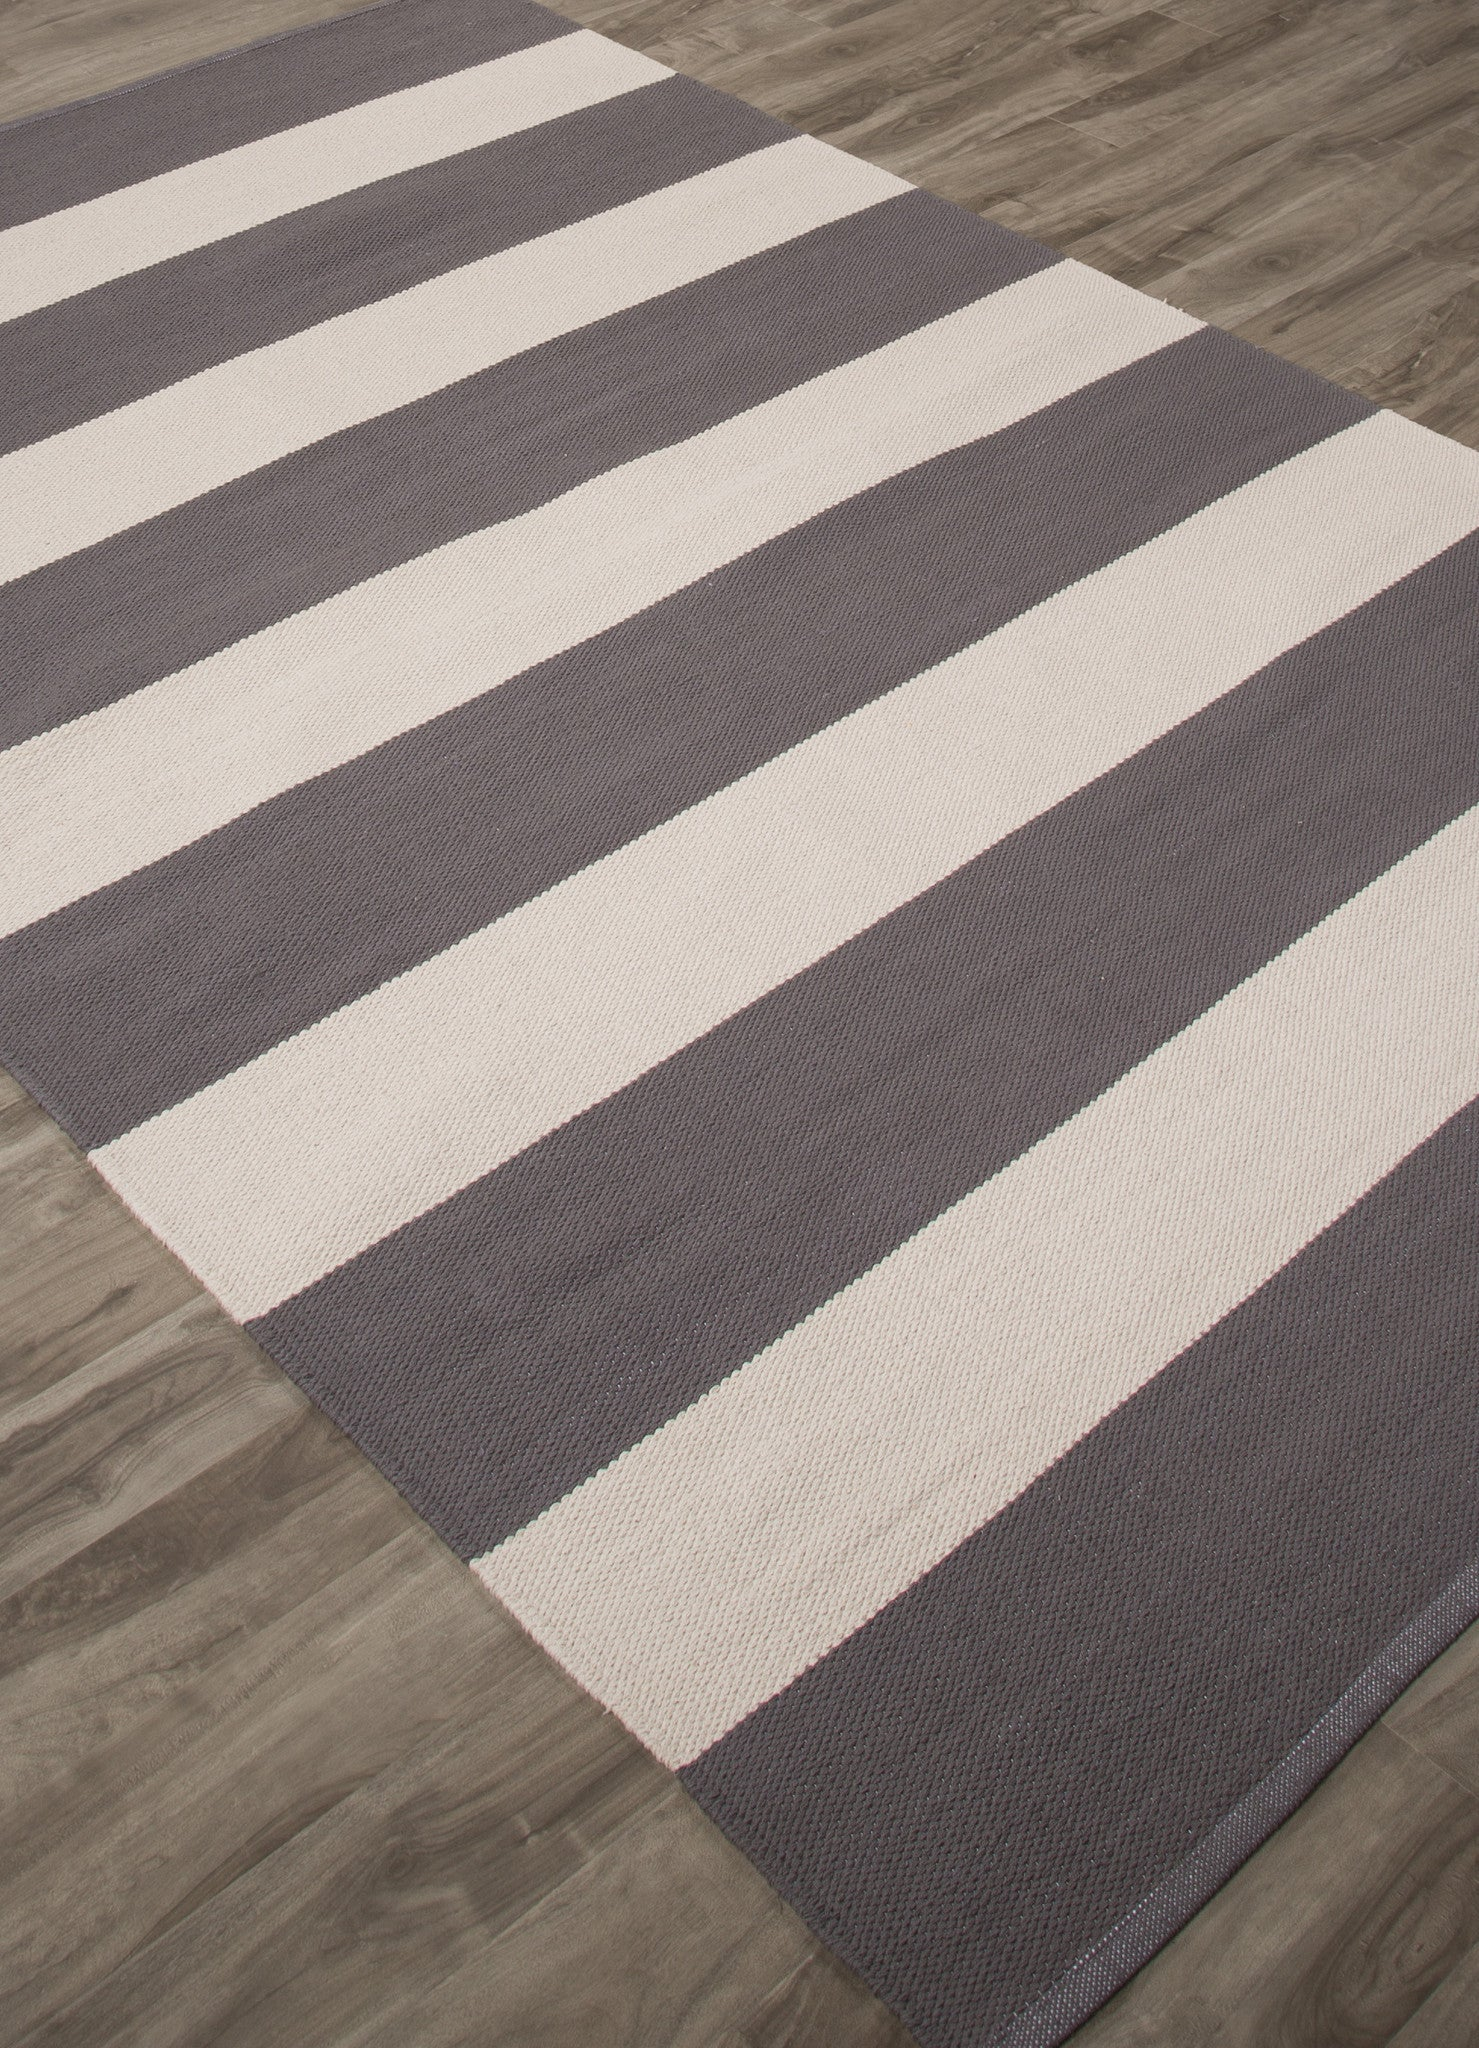 Jaipur Rugs Flatweave Stripe Pattern Gray White Cotton